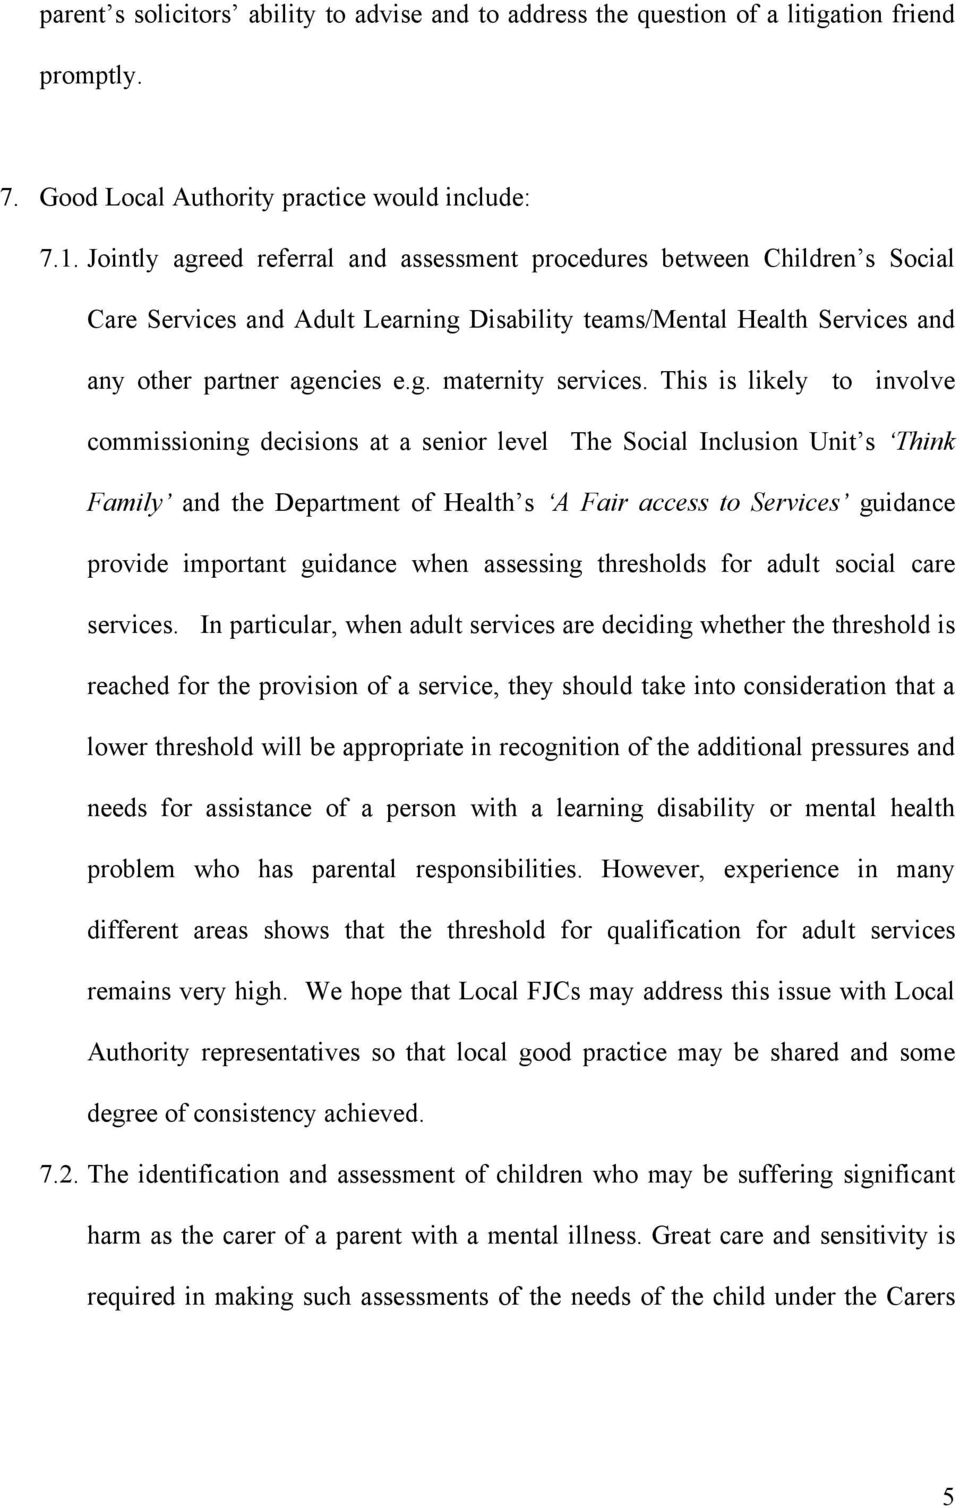 This is likely to involve commissioning decisions at a senior level The Social Inclusion Unit s Think Family and the Department of Health s A Fair access to Services guidance provide important